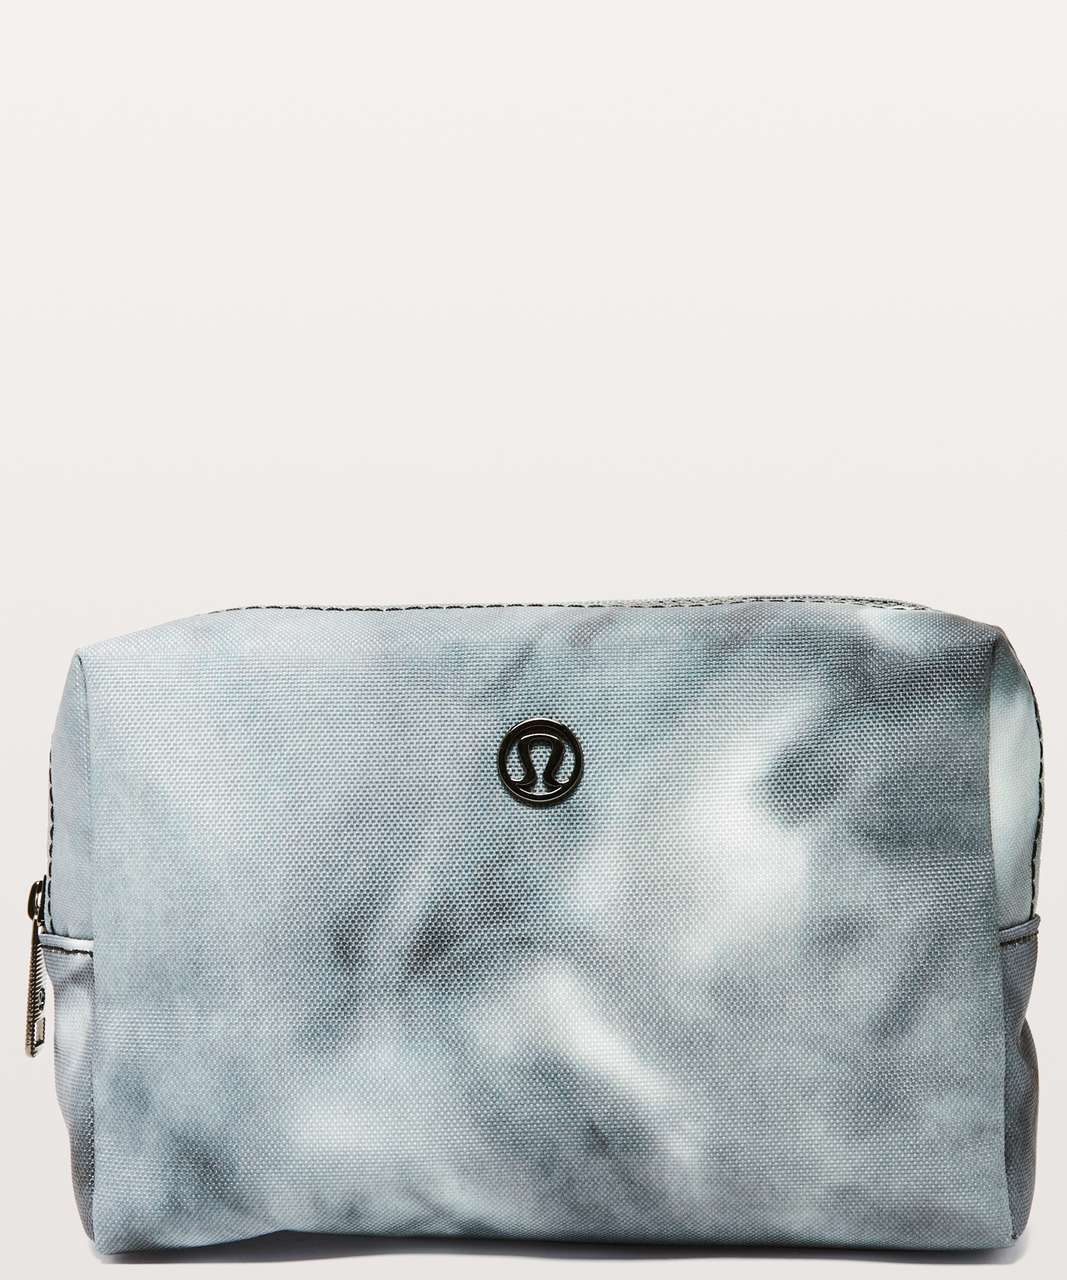 Lululemon All Your Small Things Pouch *Mini 2L - Spray Dye Grey Multi / Black